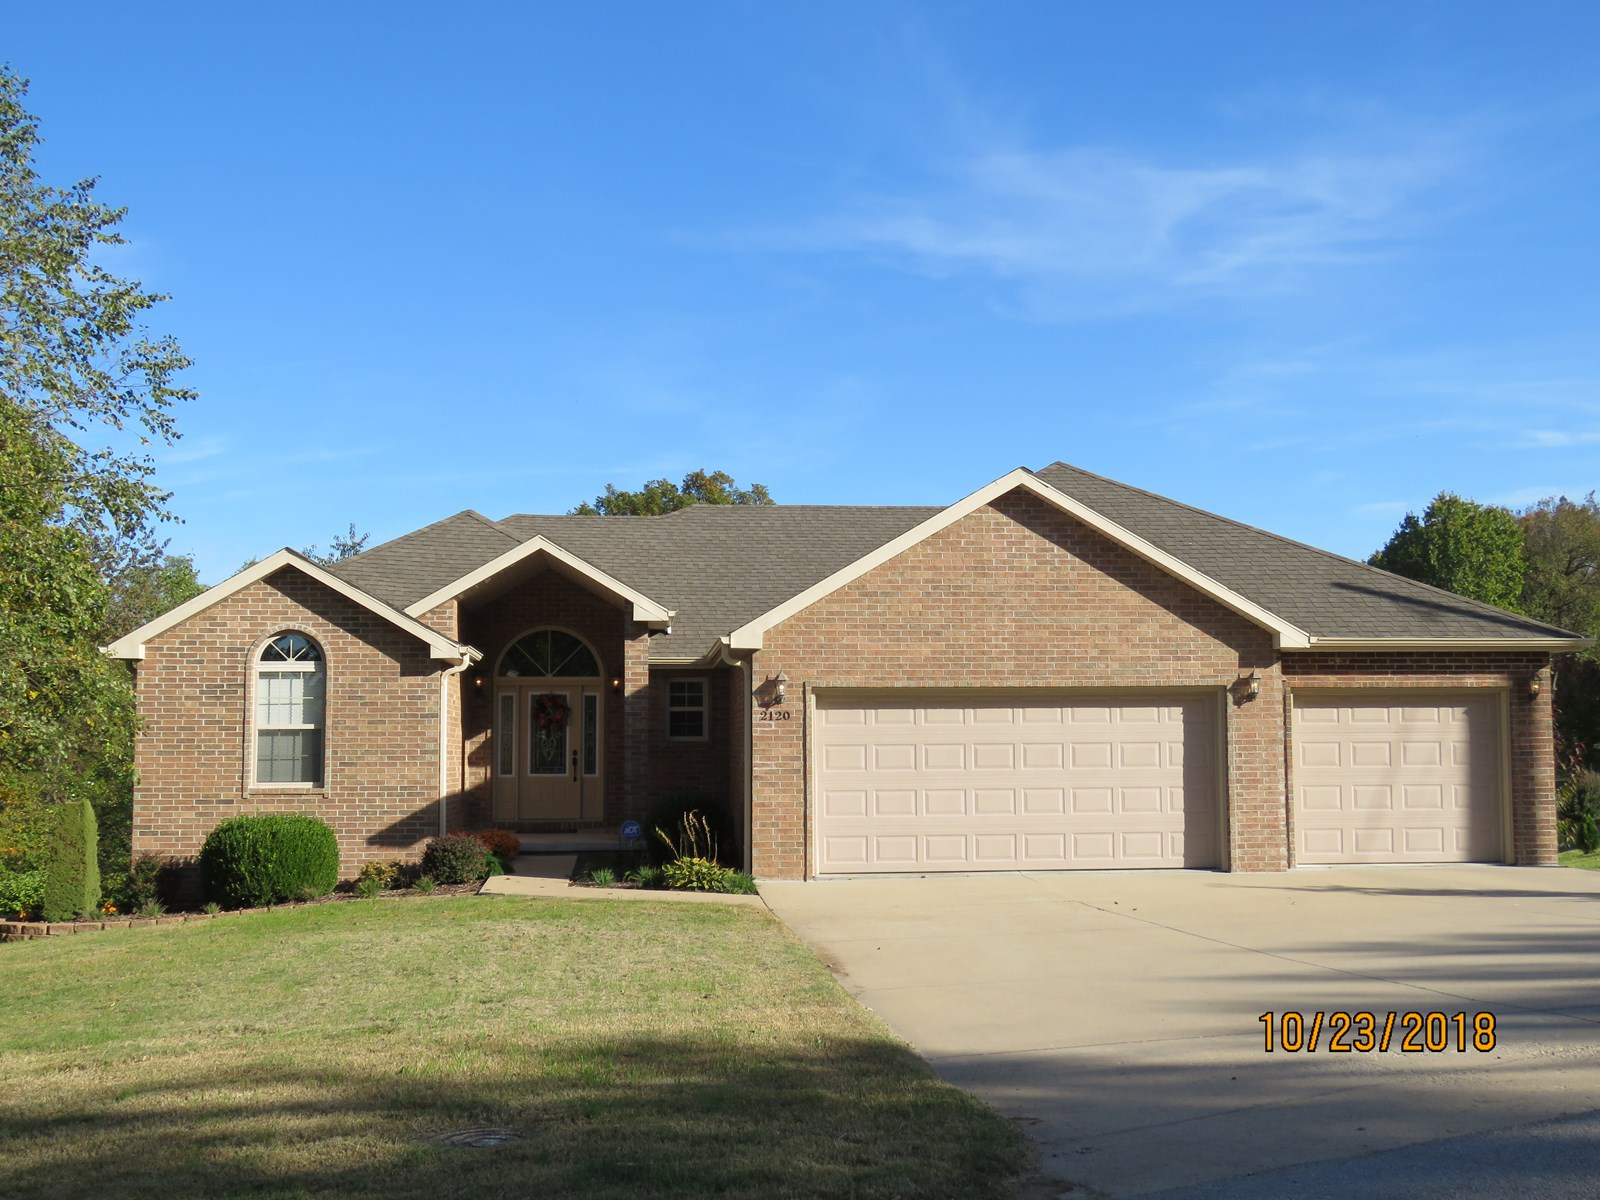 House for sale in Ava view heights in Ava, Mo